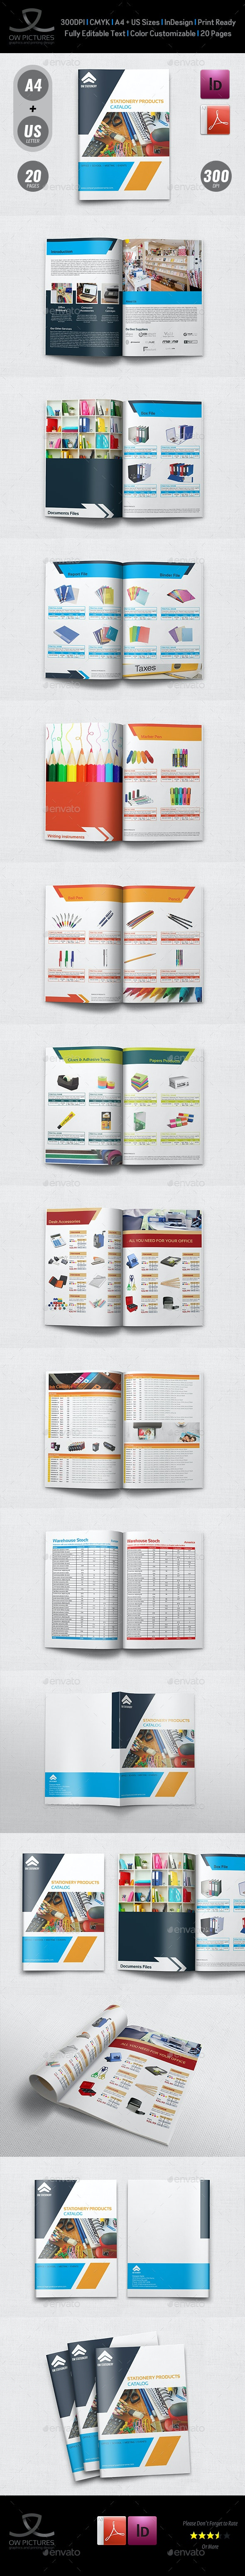 Stationery Products Catalog Brochure Template Vol.2 - 20 Pages - Catalogs Brochures